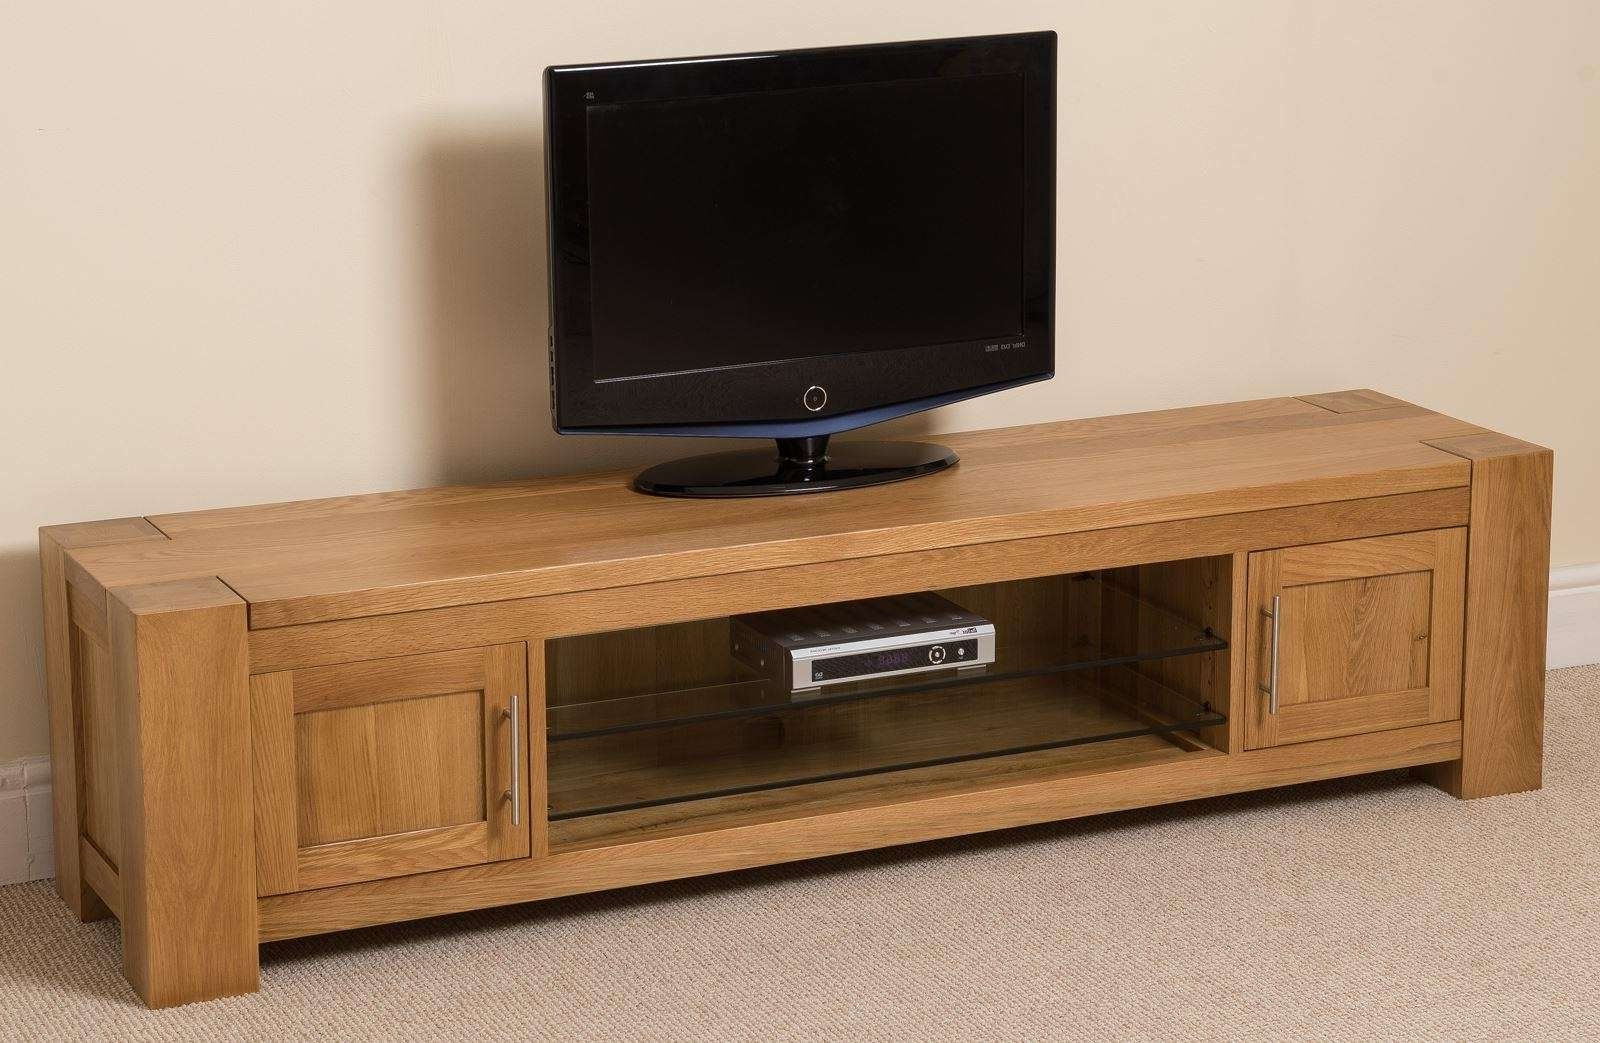 kuba solid widescreen tv cabinet oak furniture king for widescreen tv cabinets view 9